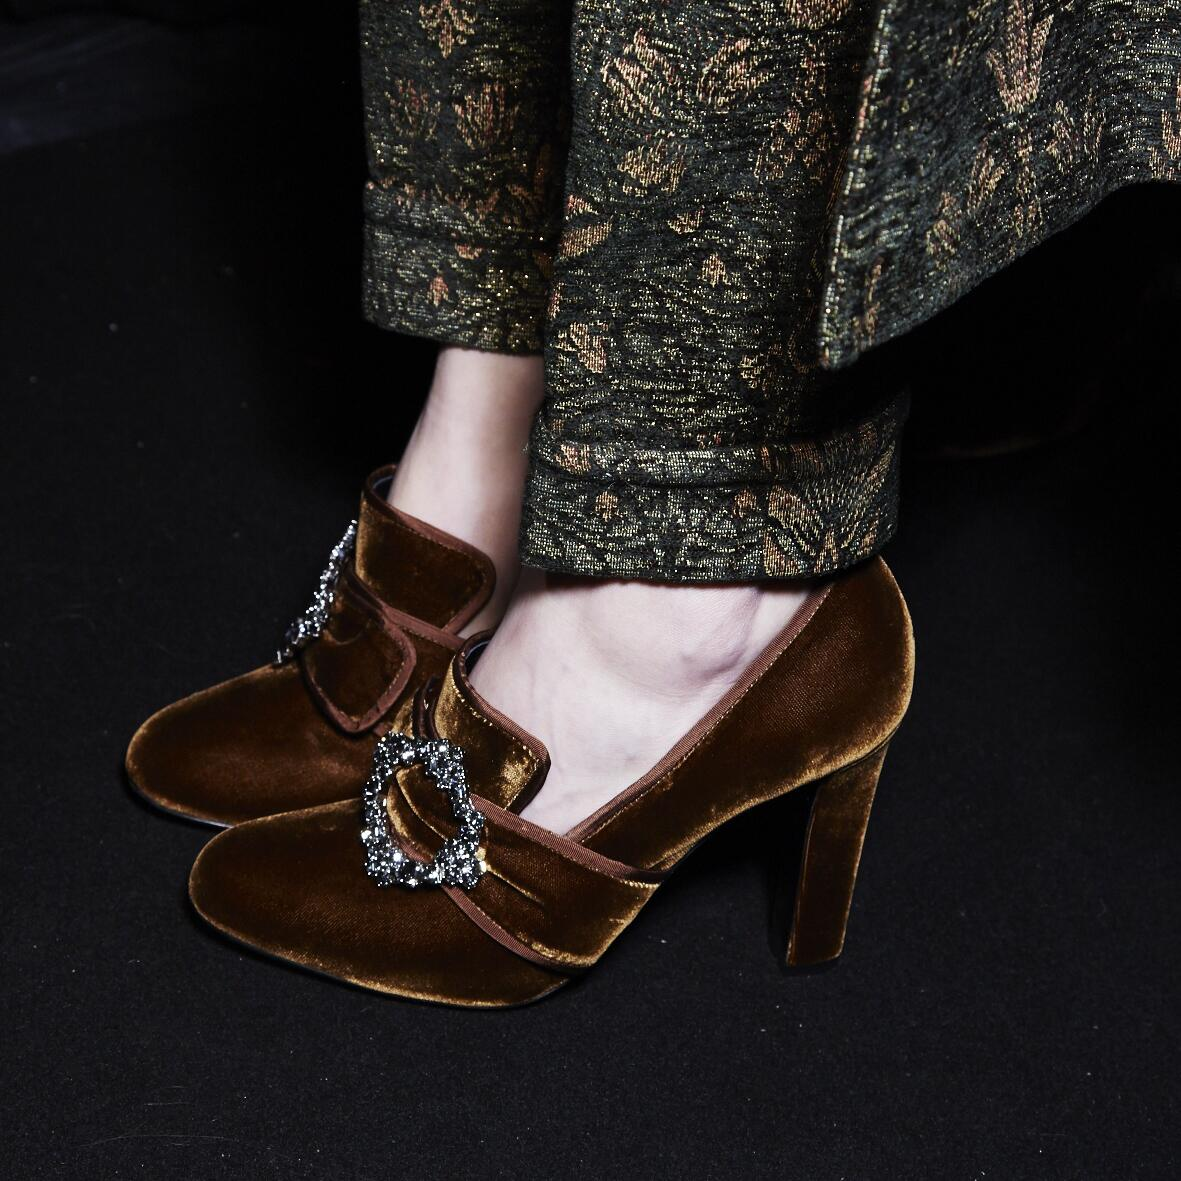 Backstage Alberta Ferretti Shoes Detail